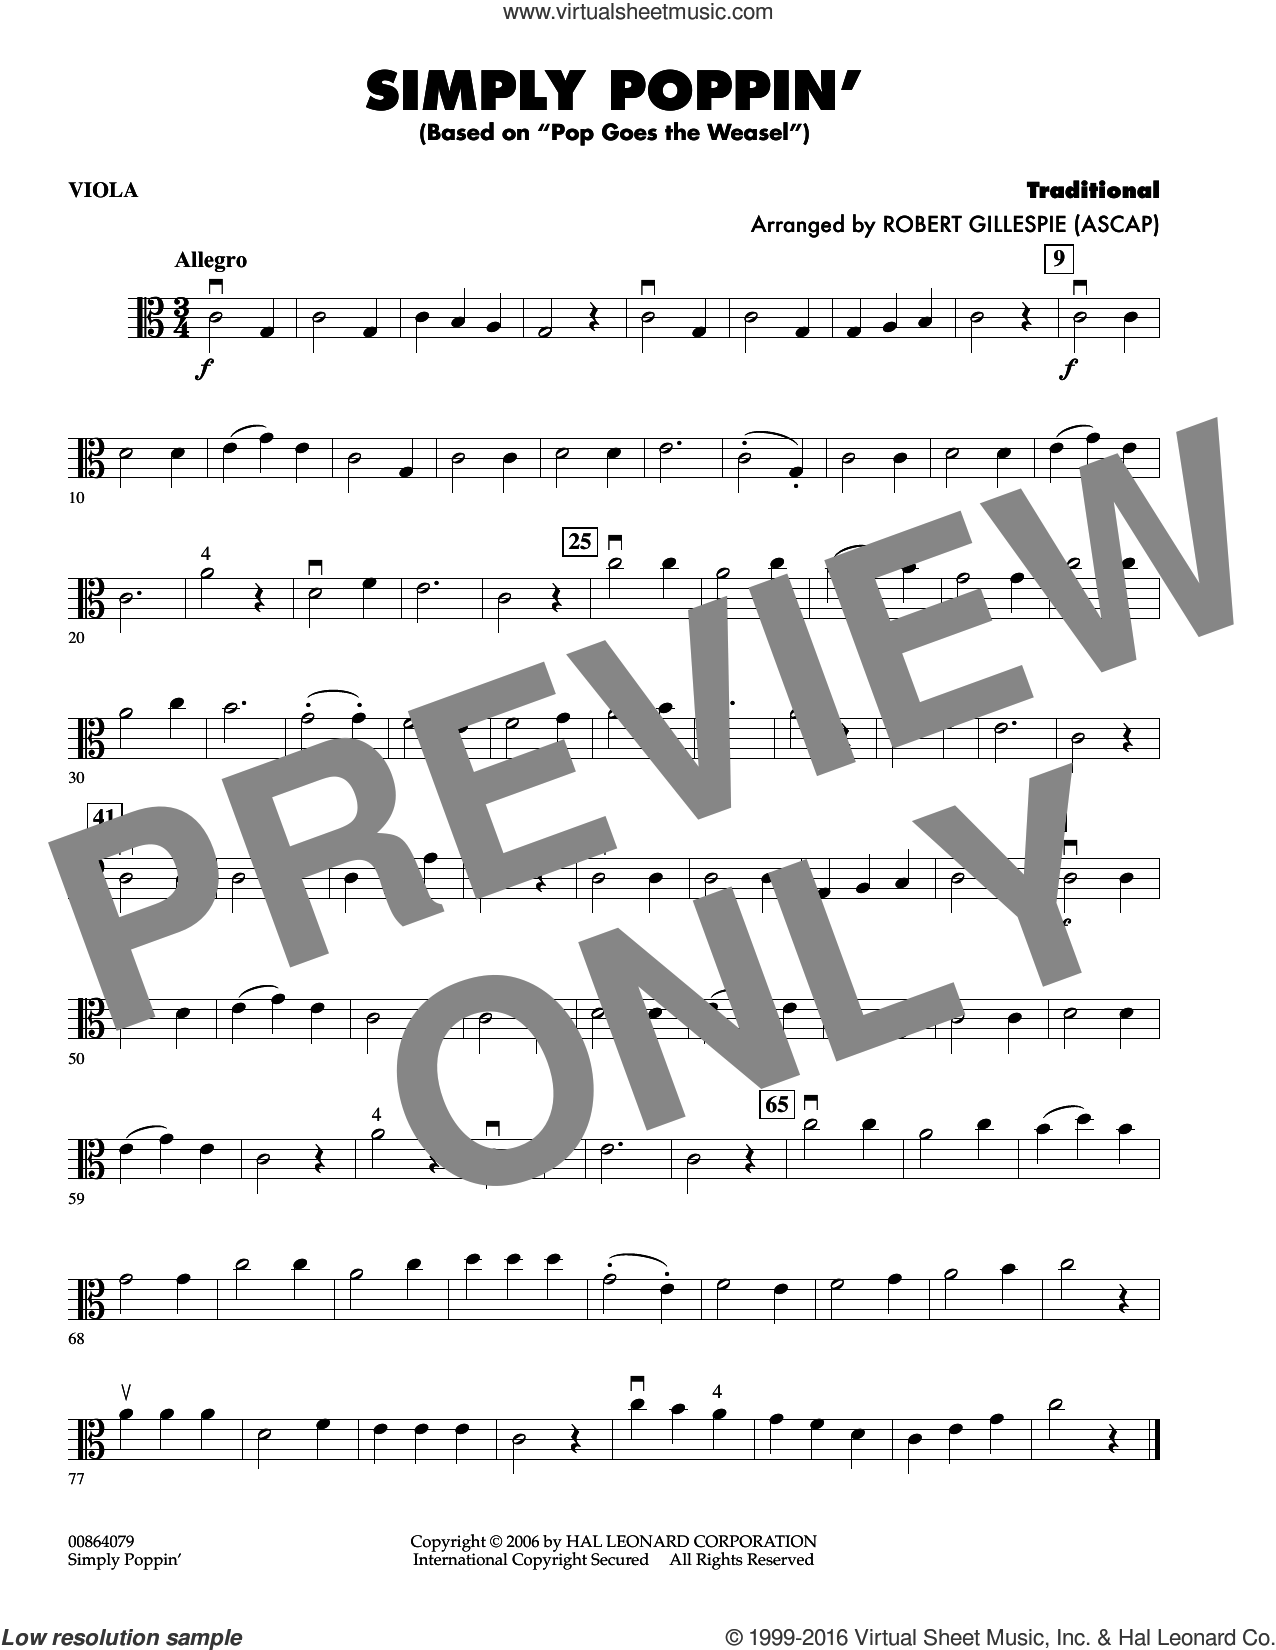 Simply Poppin' (based On Pop Goes The Weasel) sheet music for orchestra (viola) by Robert Gillespie, intermediate